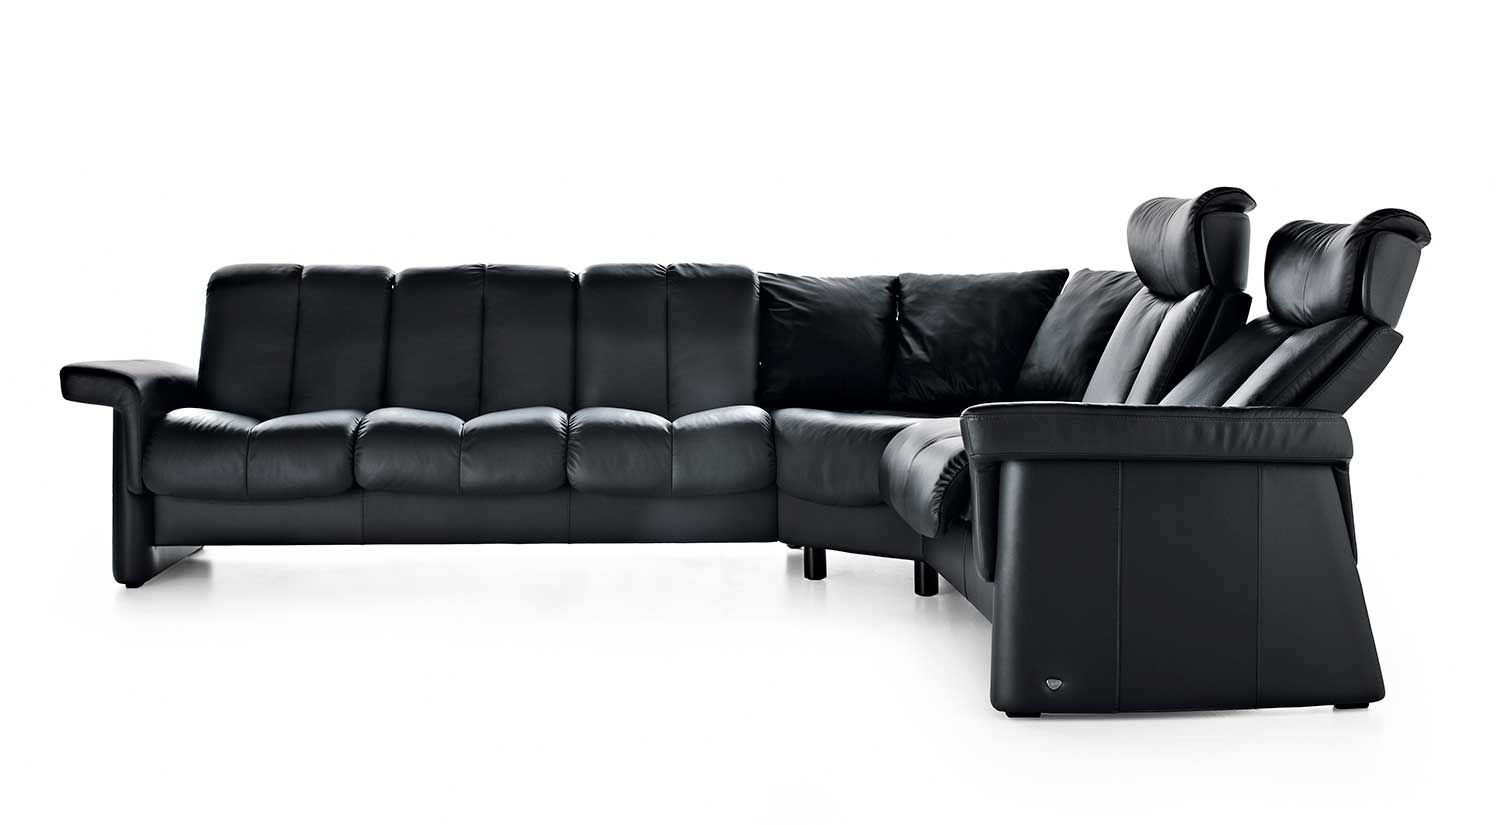 sectional sofas boston outdoor nz circle furniture legend stressless ekornes sectionals living